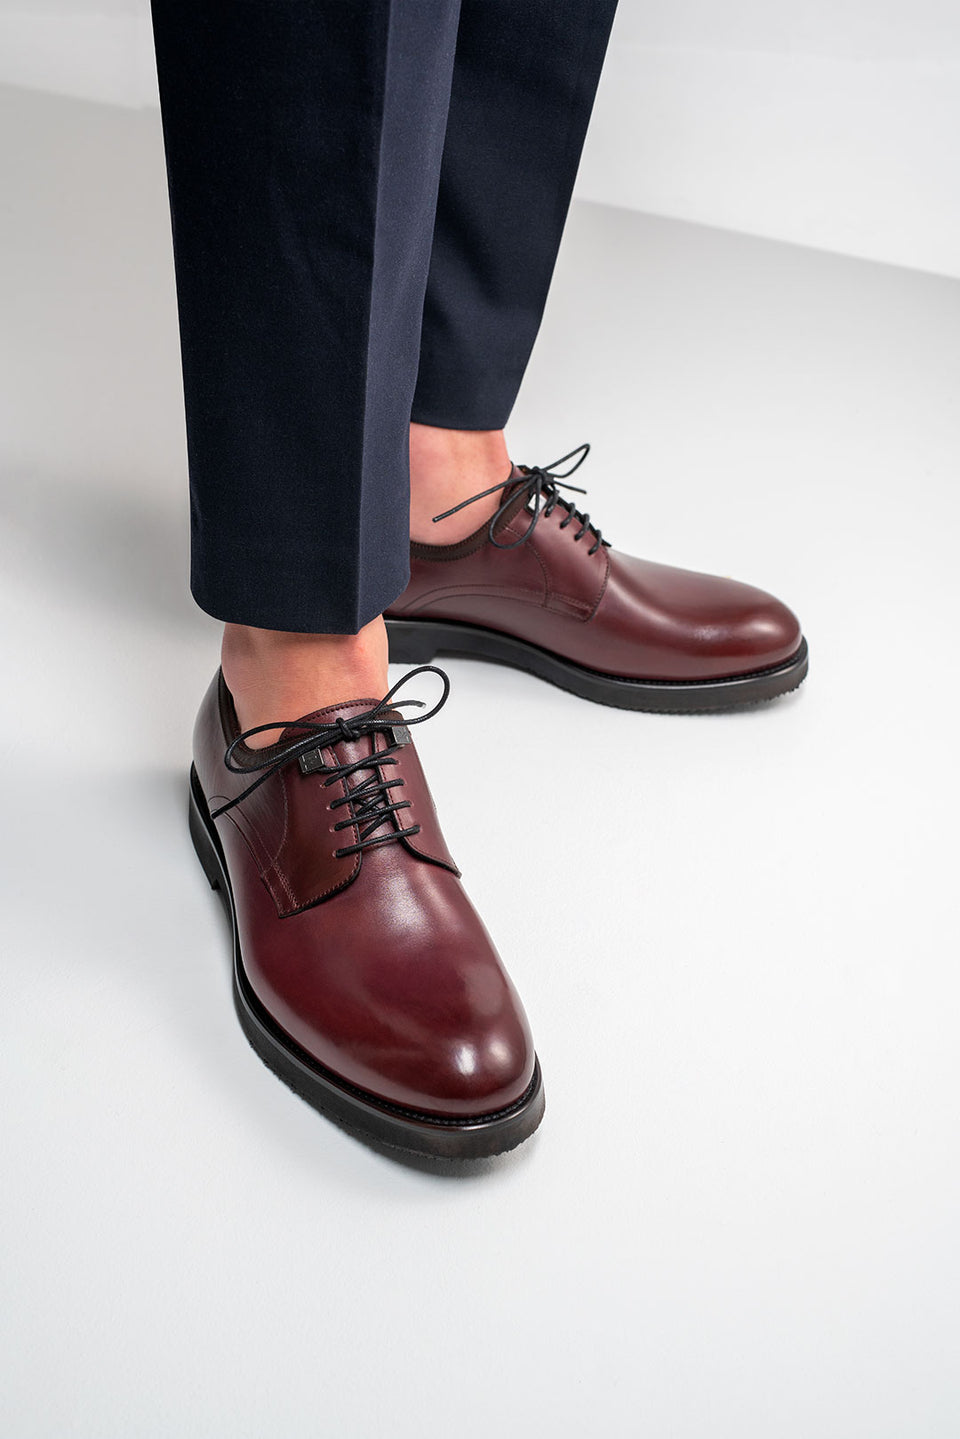 001 - Derby in Burgundy Calfskin